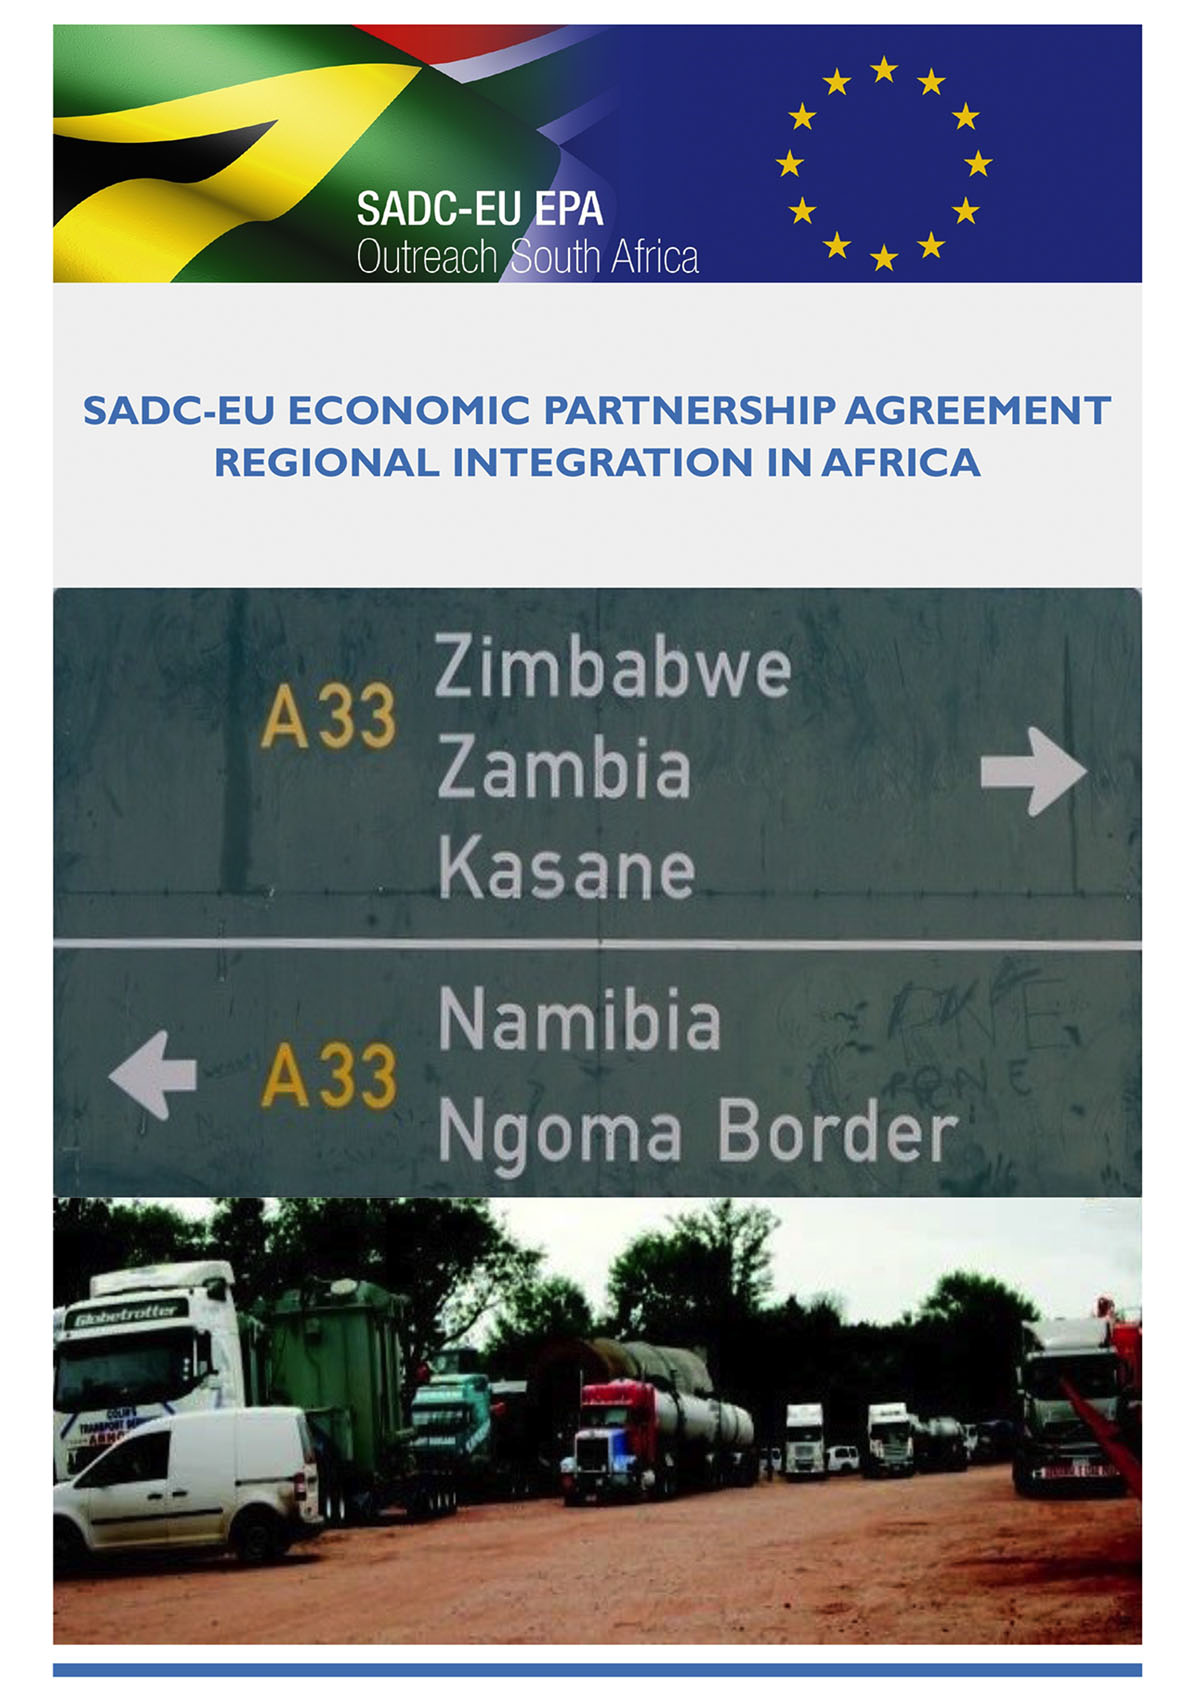 SADC-EU EPA: Regional Intergration in Africa